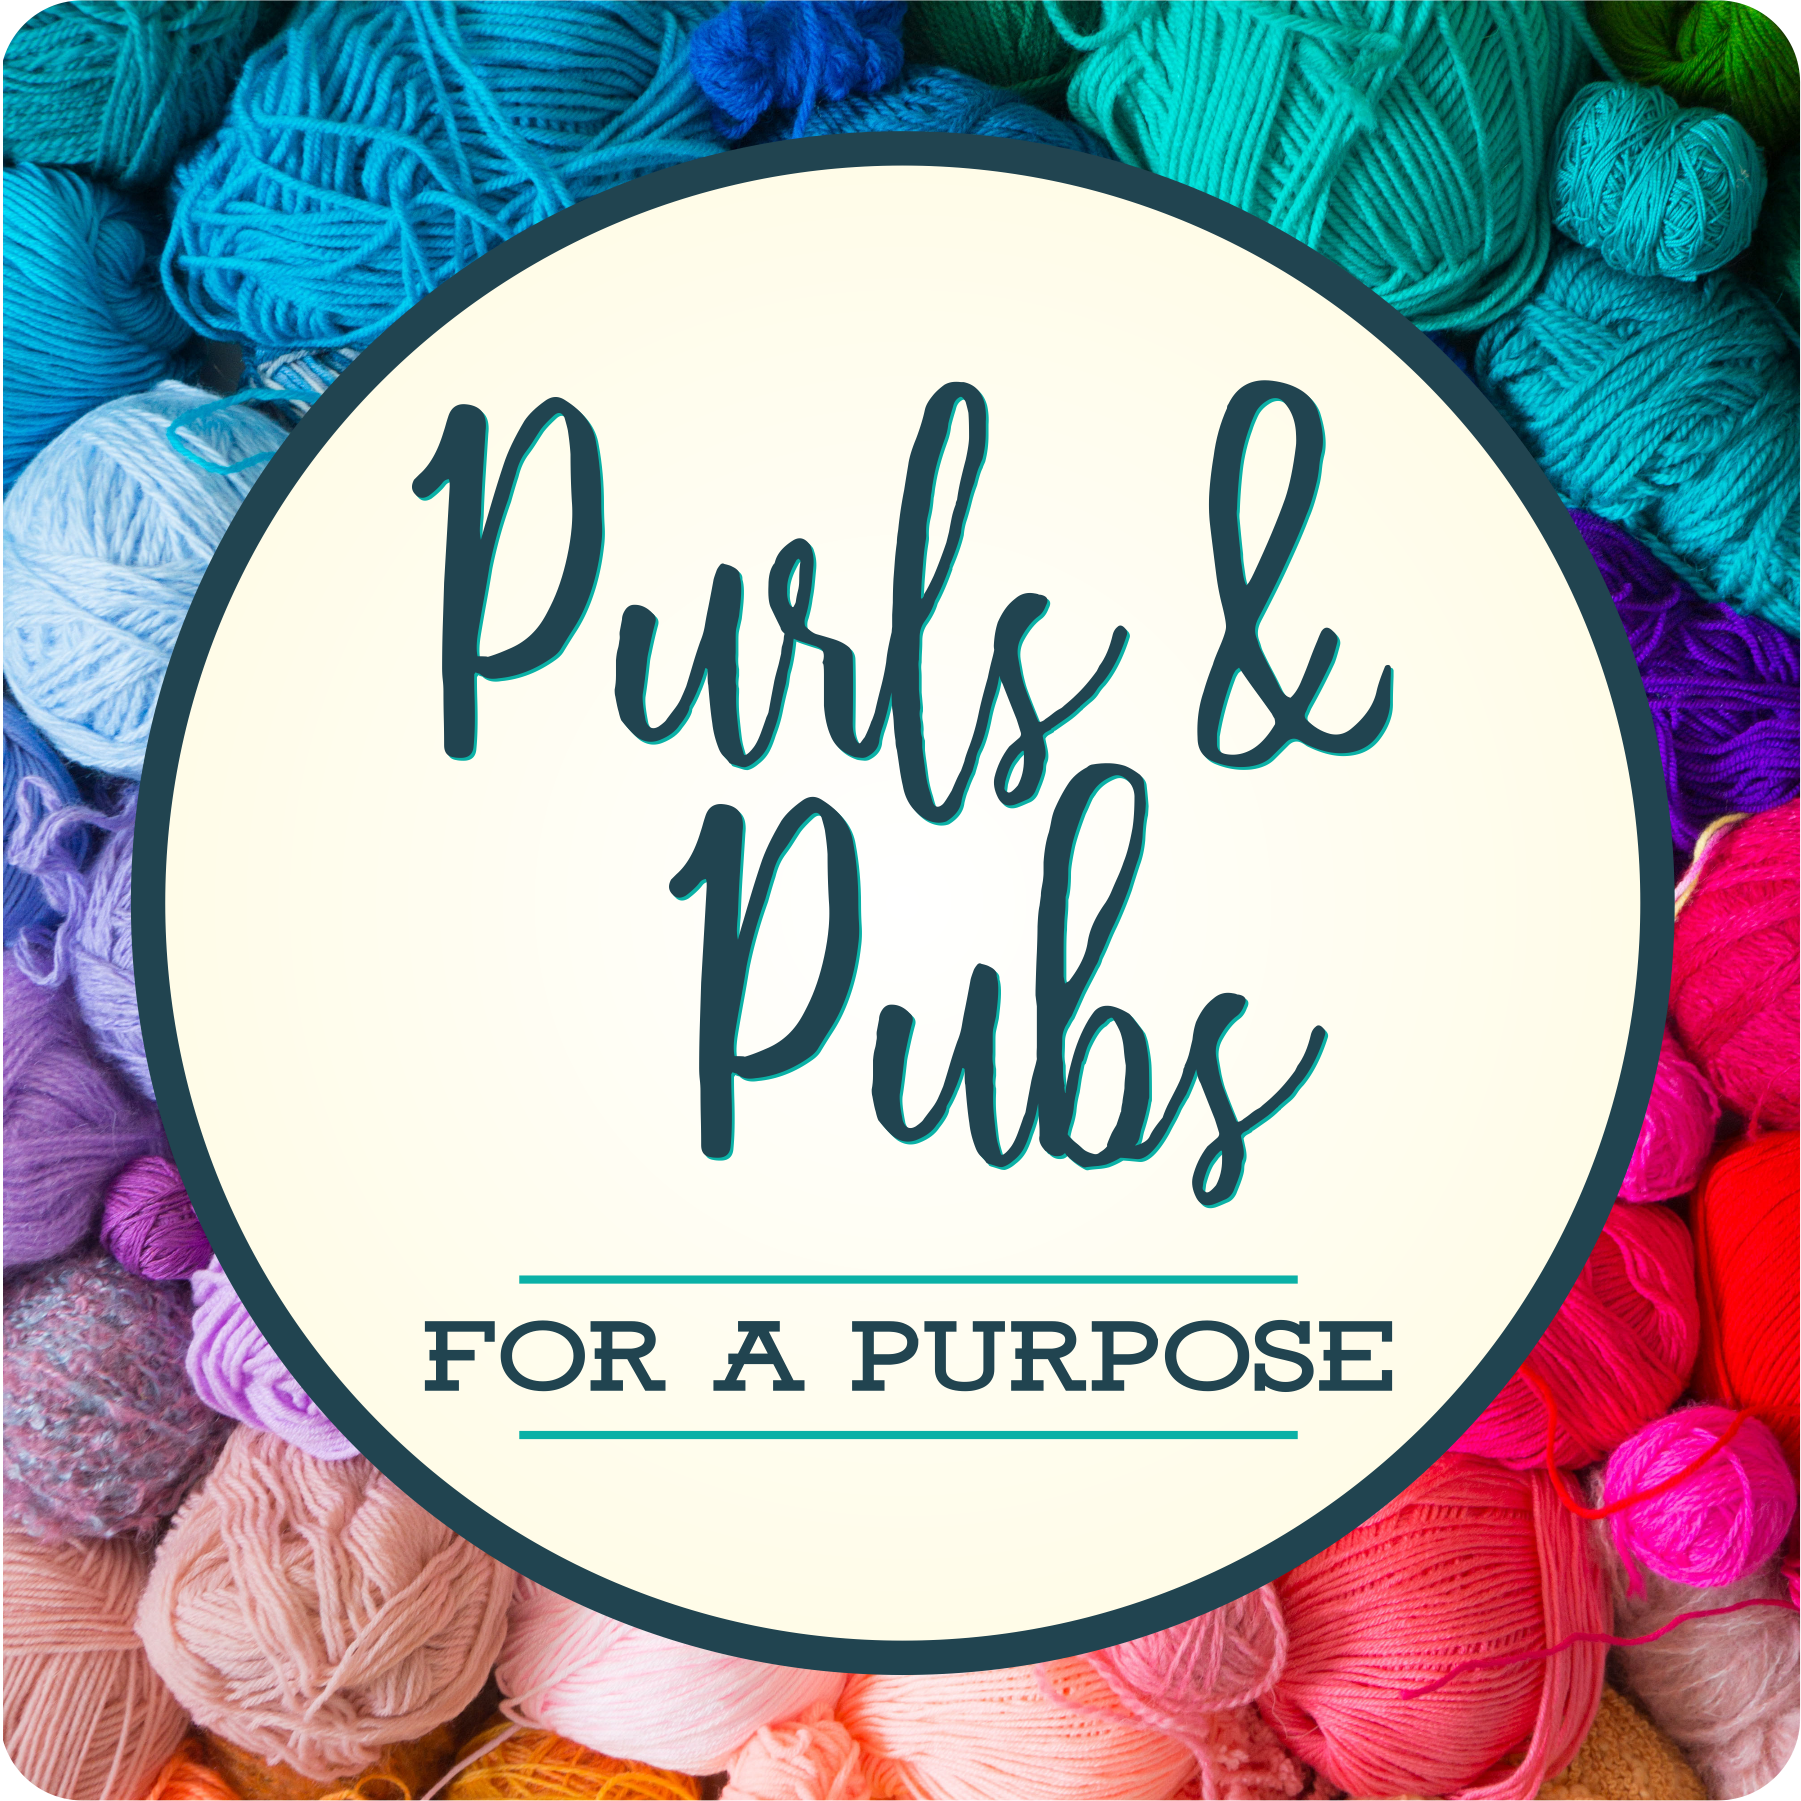 Karen M  - Purls & Pubs Meetup (Winnipeg, MB) | Meetup